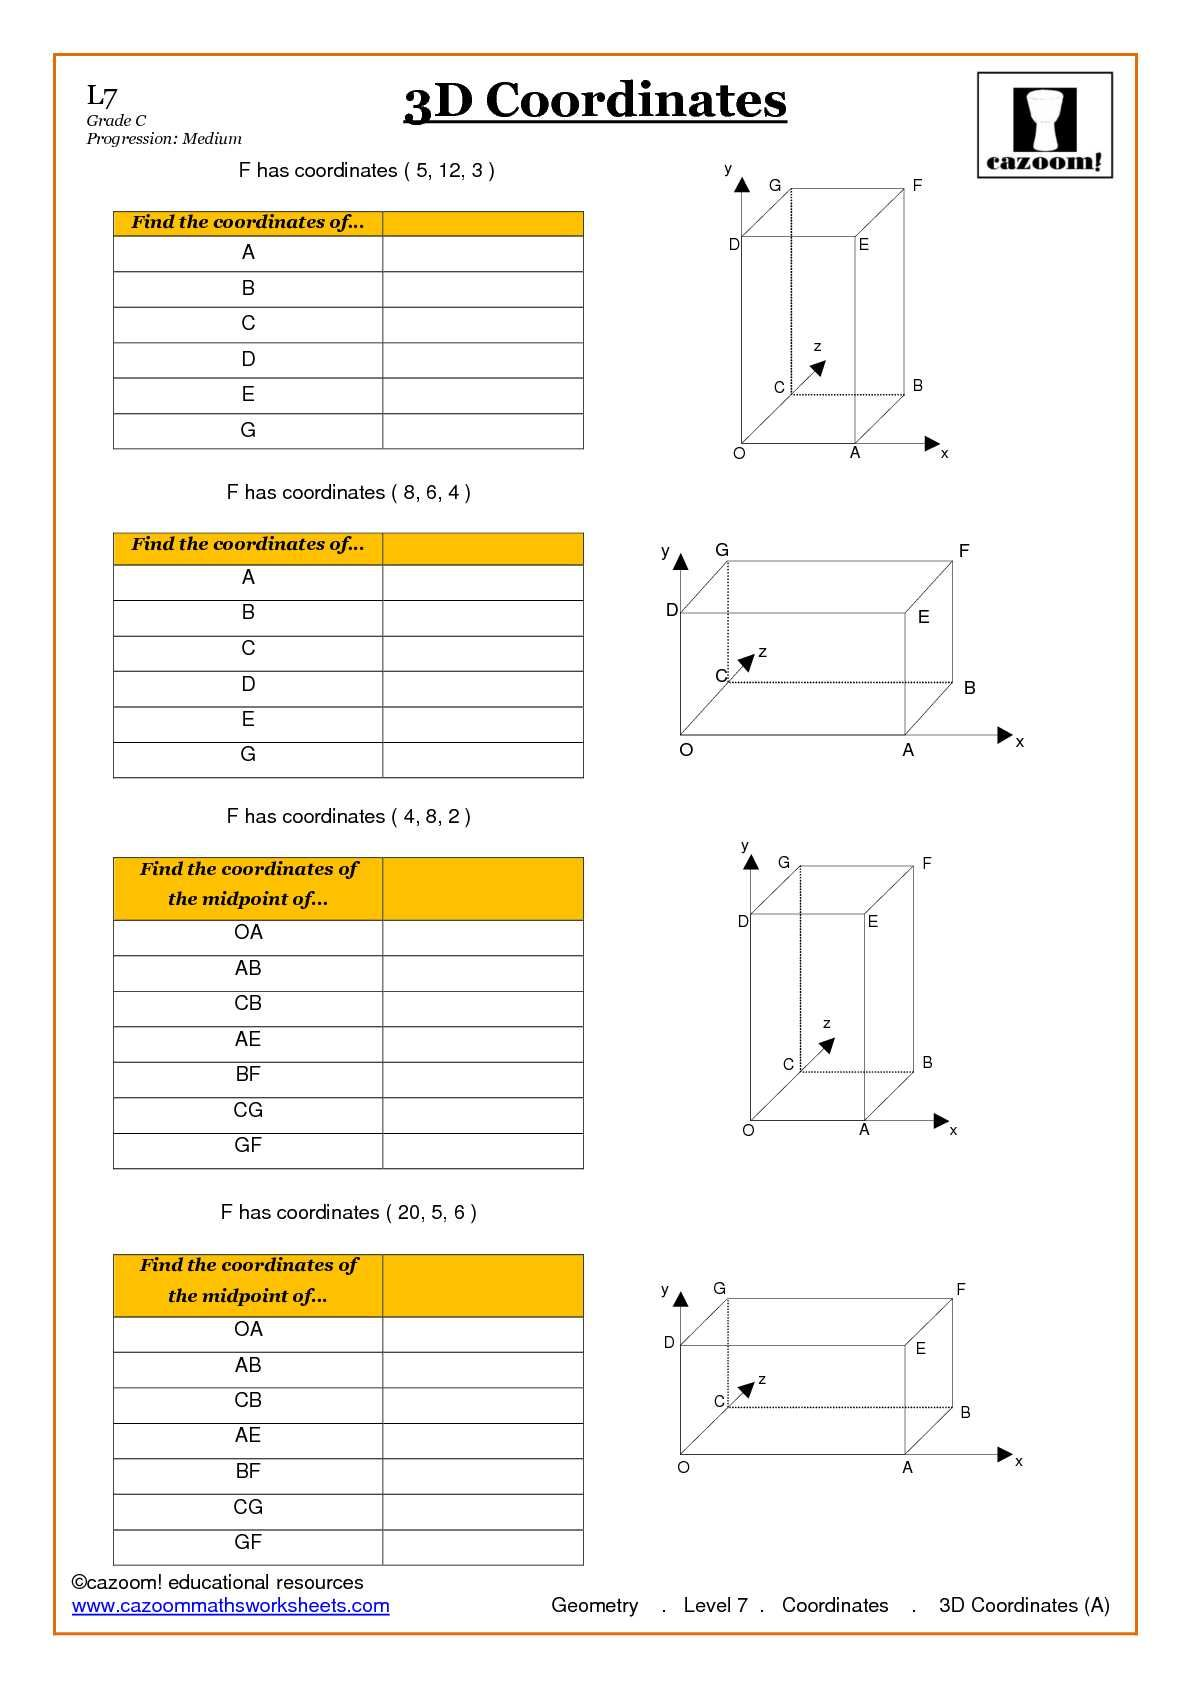 worksheet Fun Geometry Worksheets algebra maths worksheet ks3 and ks4 fun worksheets printable teaching resources each is differentiated visual geometry coordinate and